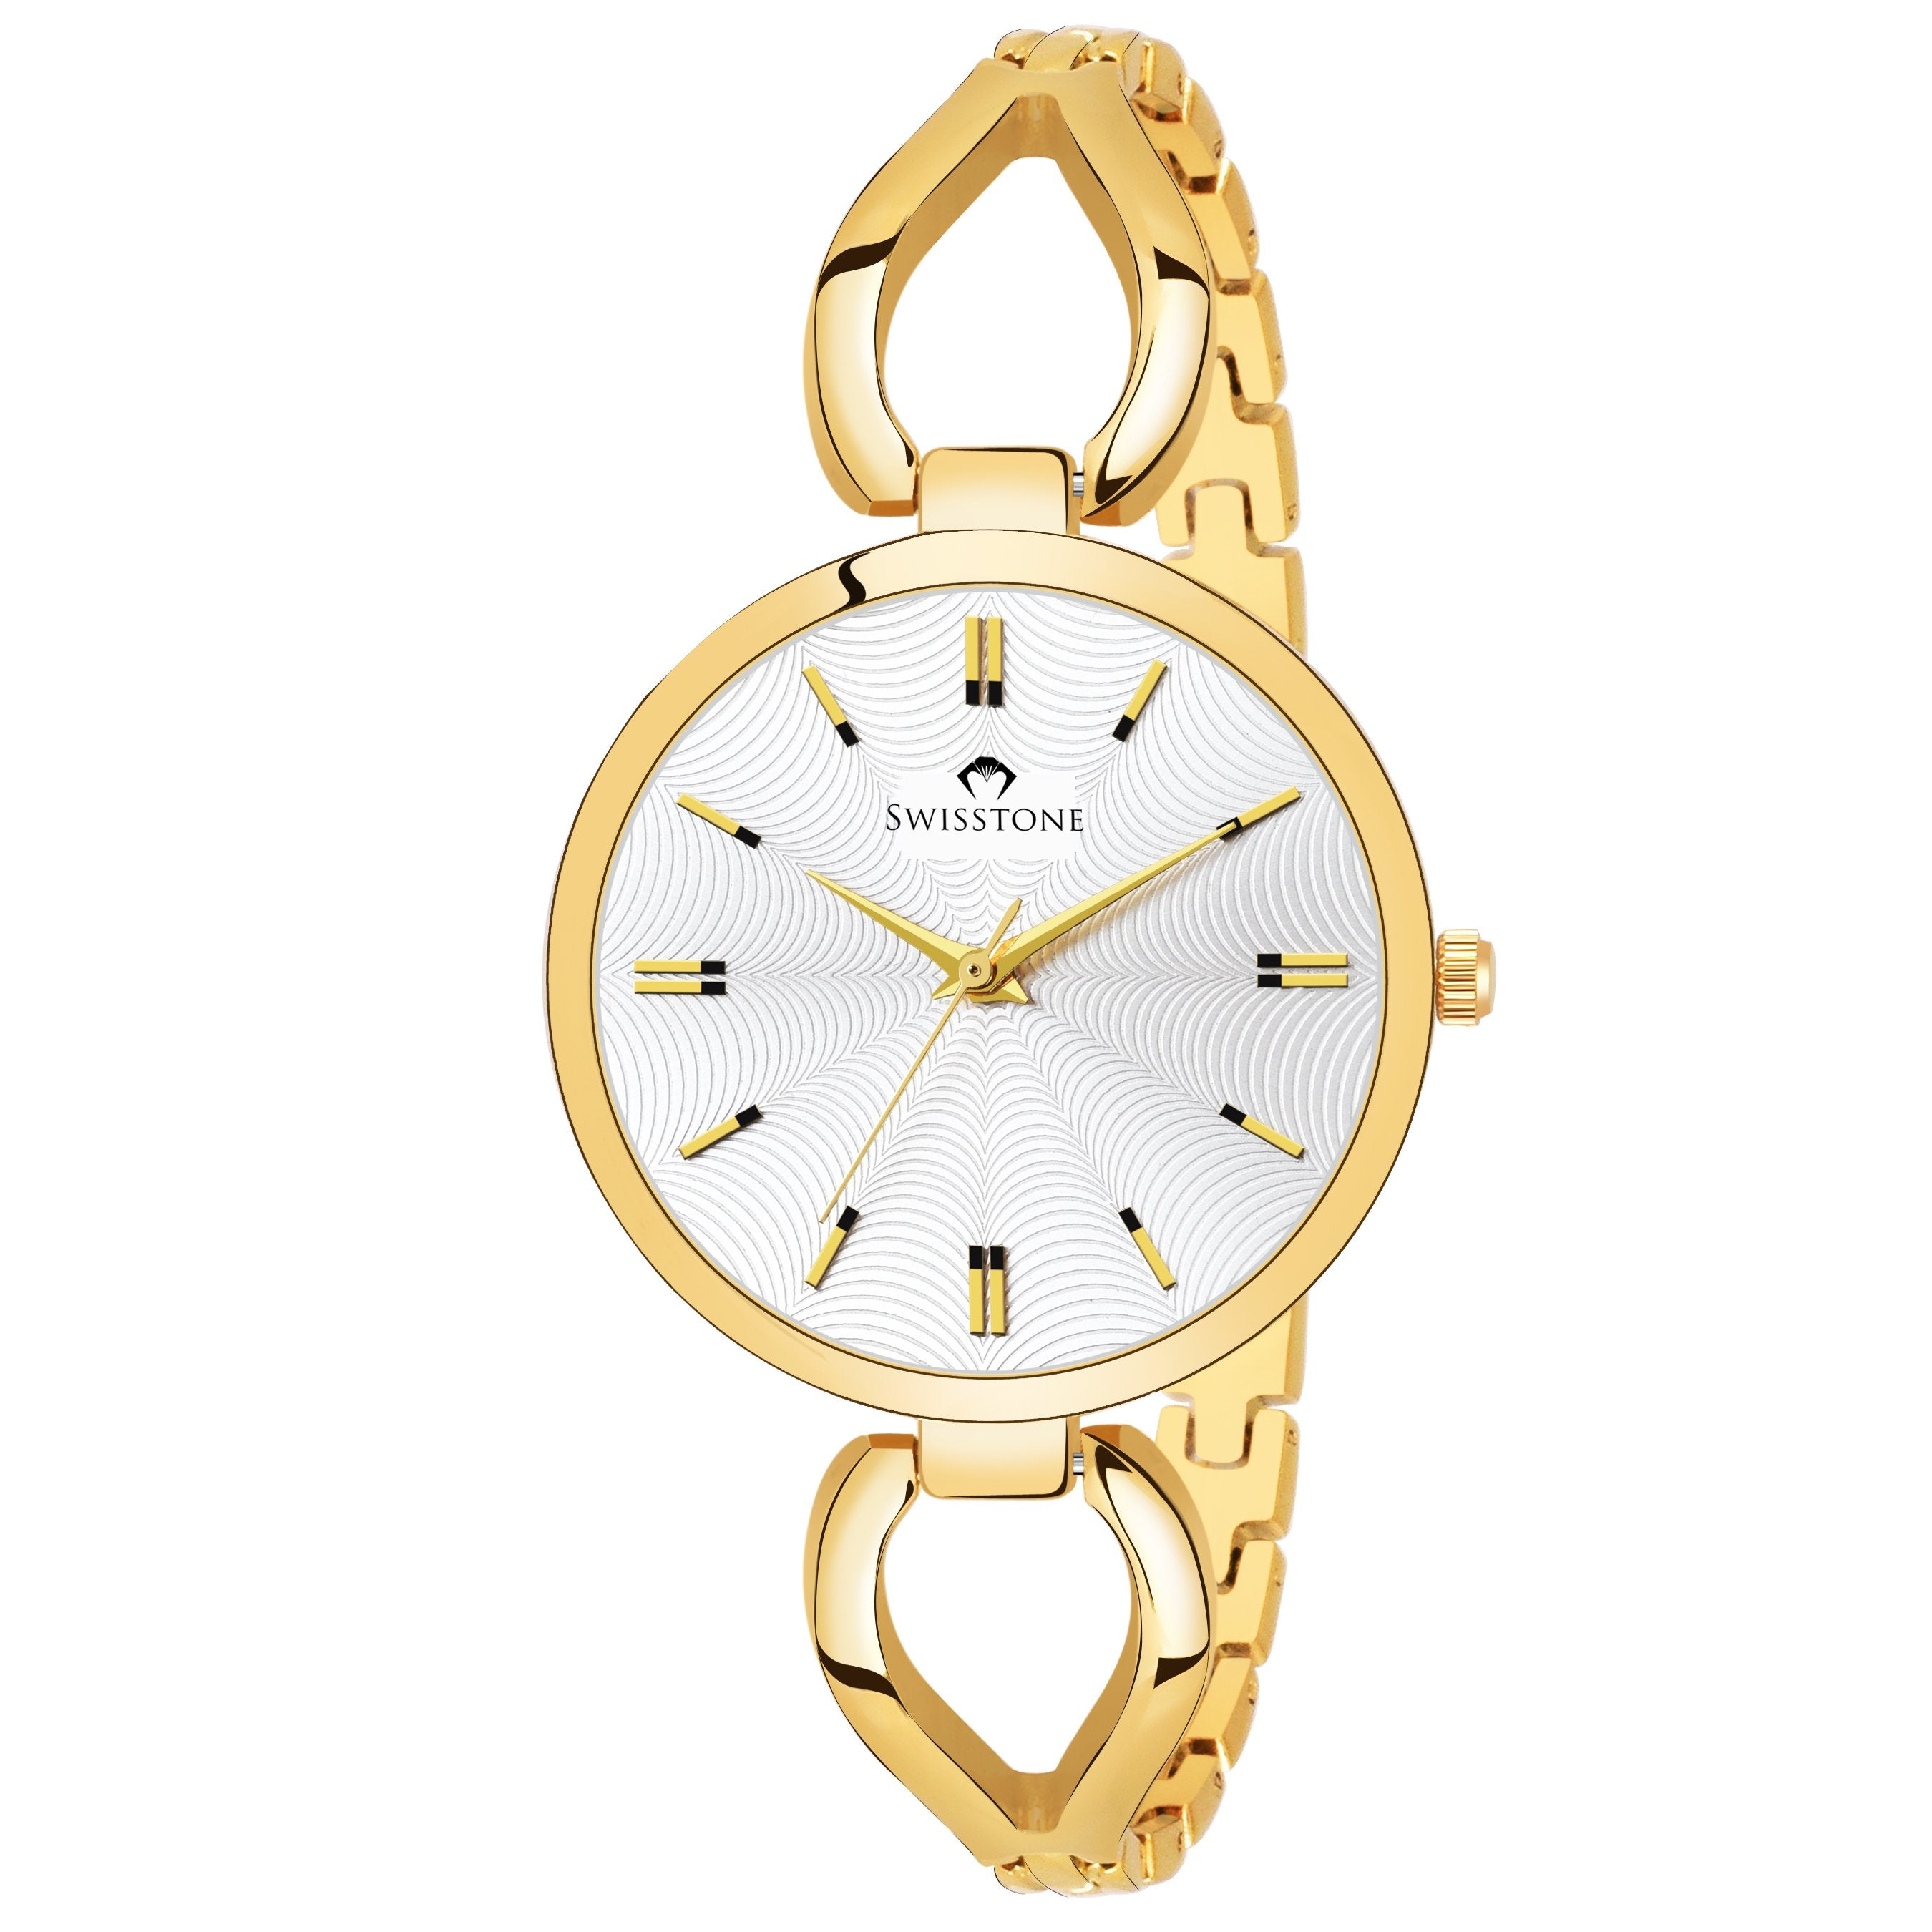 Swisstone DZL352-WHTGLD Wrist Watch for Women